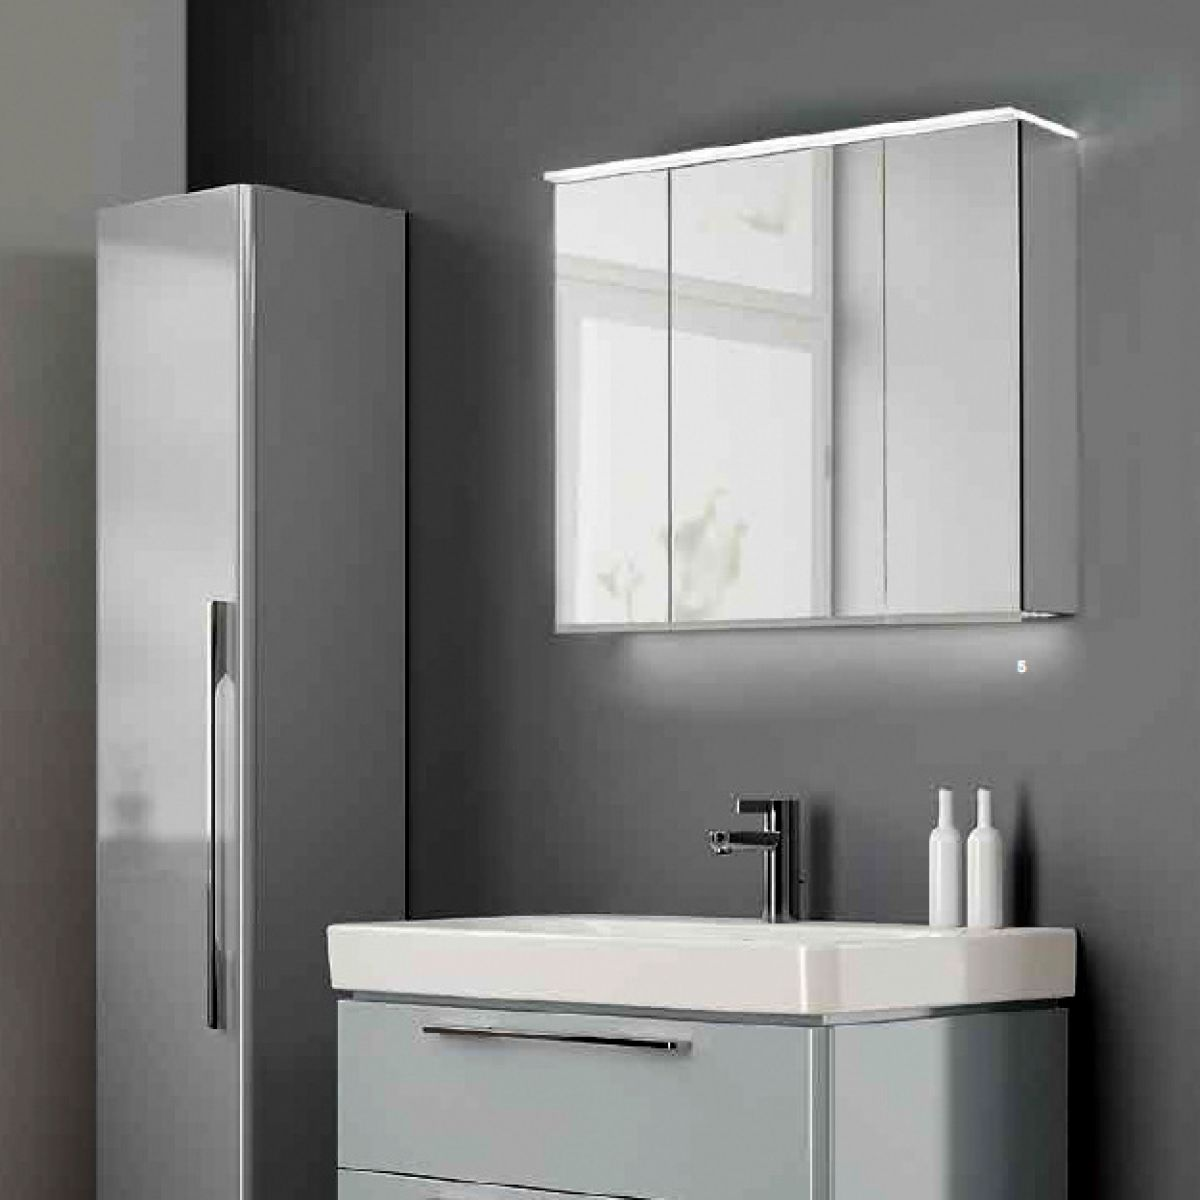 Bathroom Cabinet With Mirror Geberit Option Plus Mirror Cabinet Uk Bathrooms